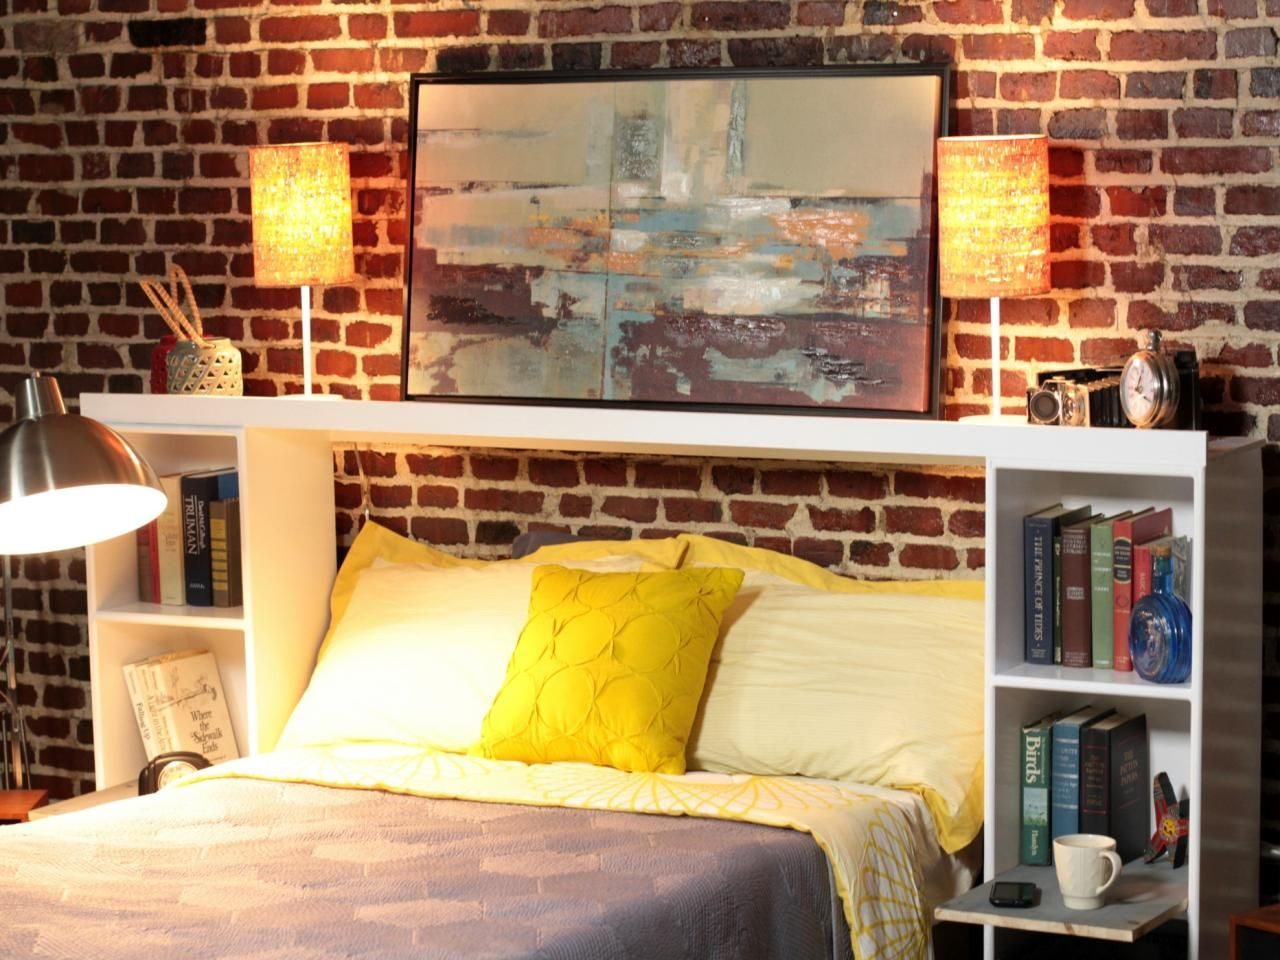 Salvage Items Turned Into Bedroom Headboards | Wood crates ...